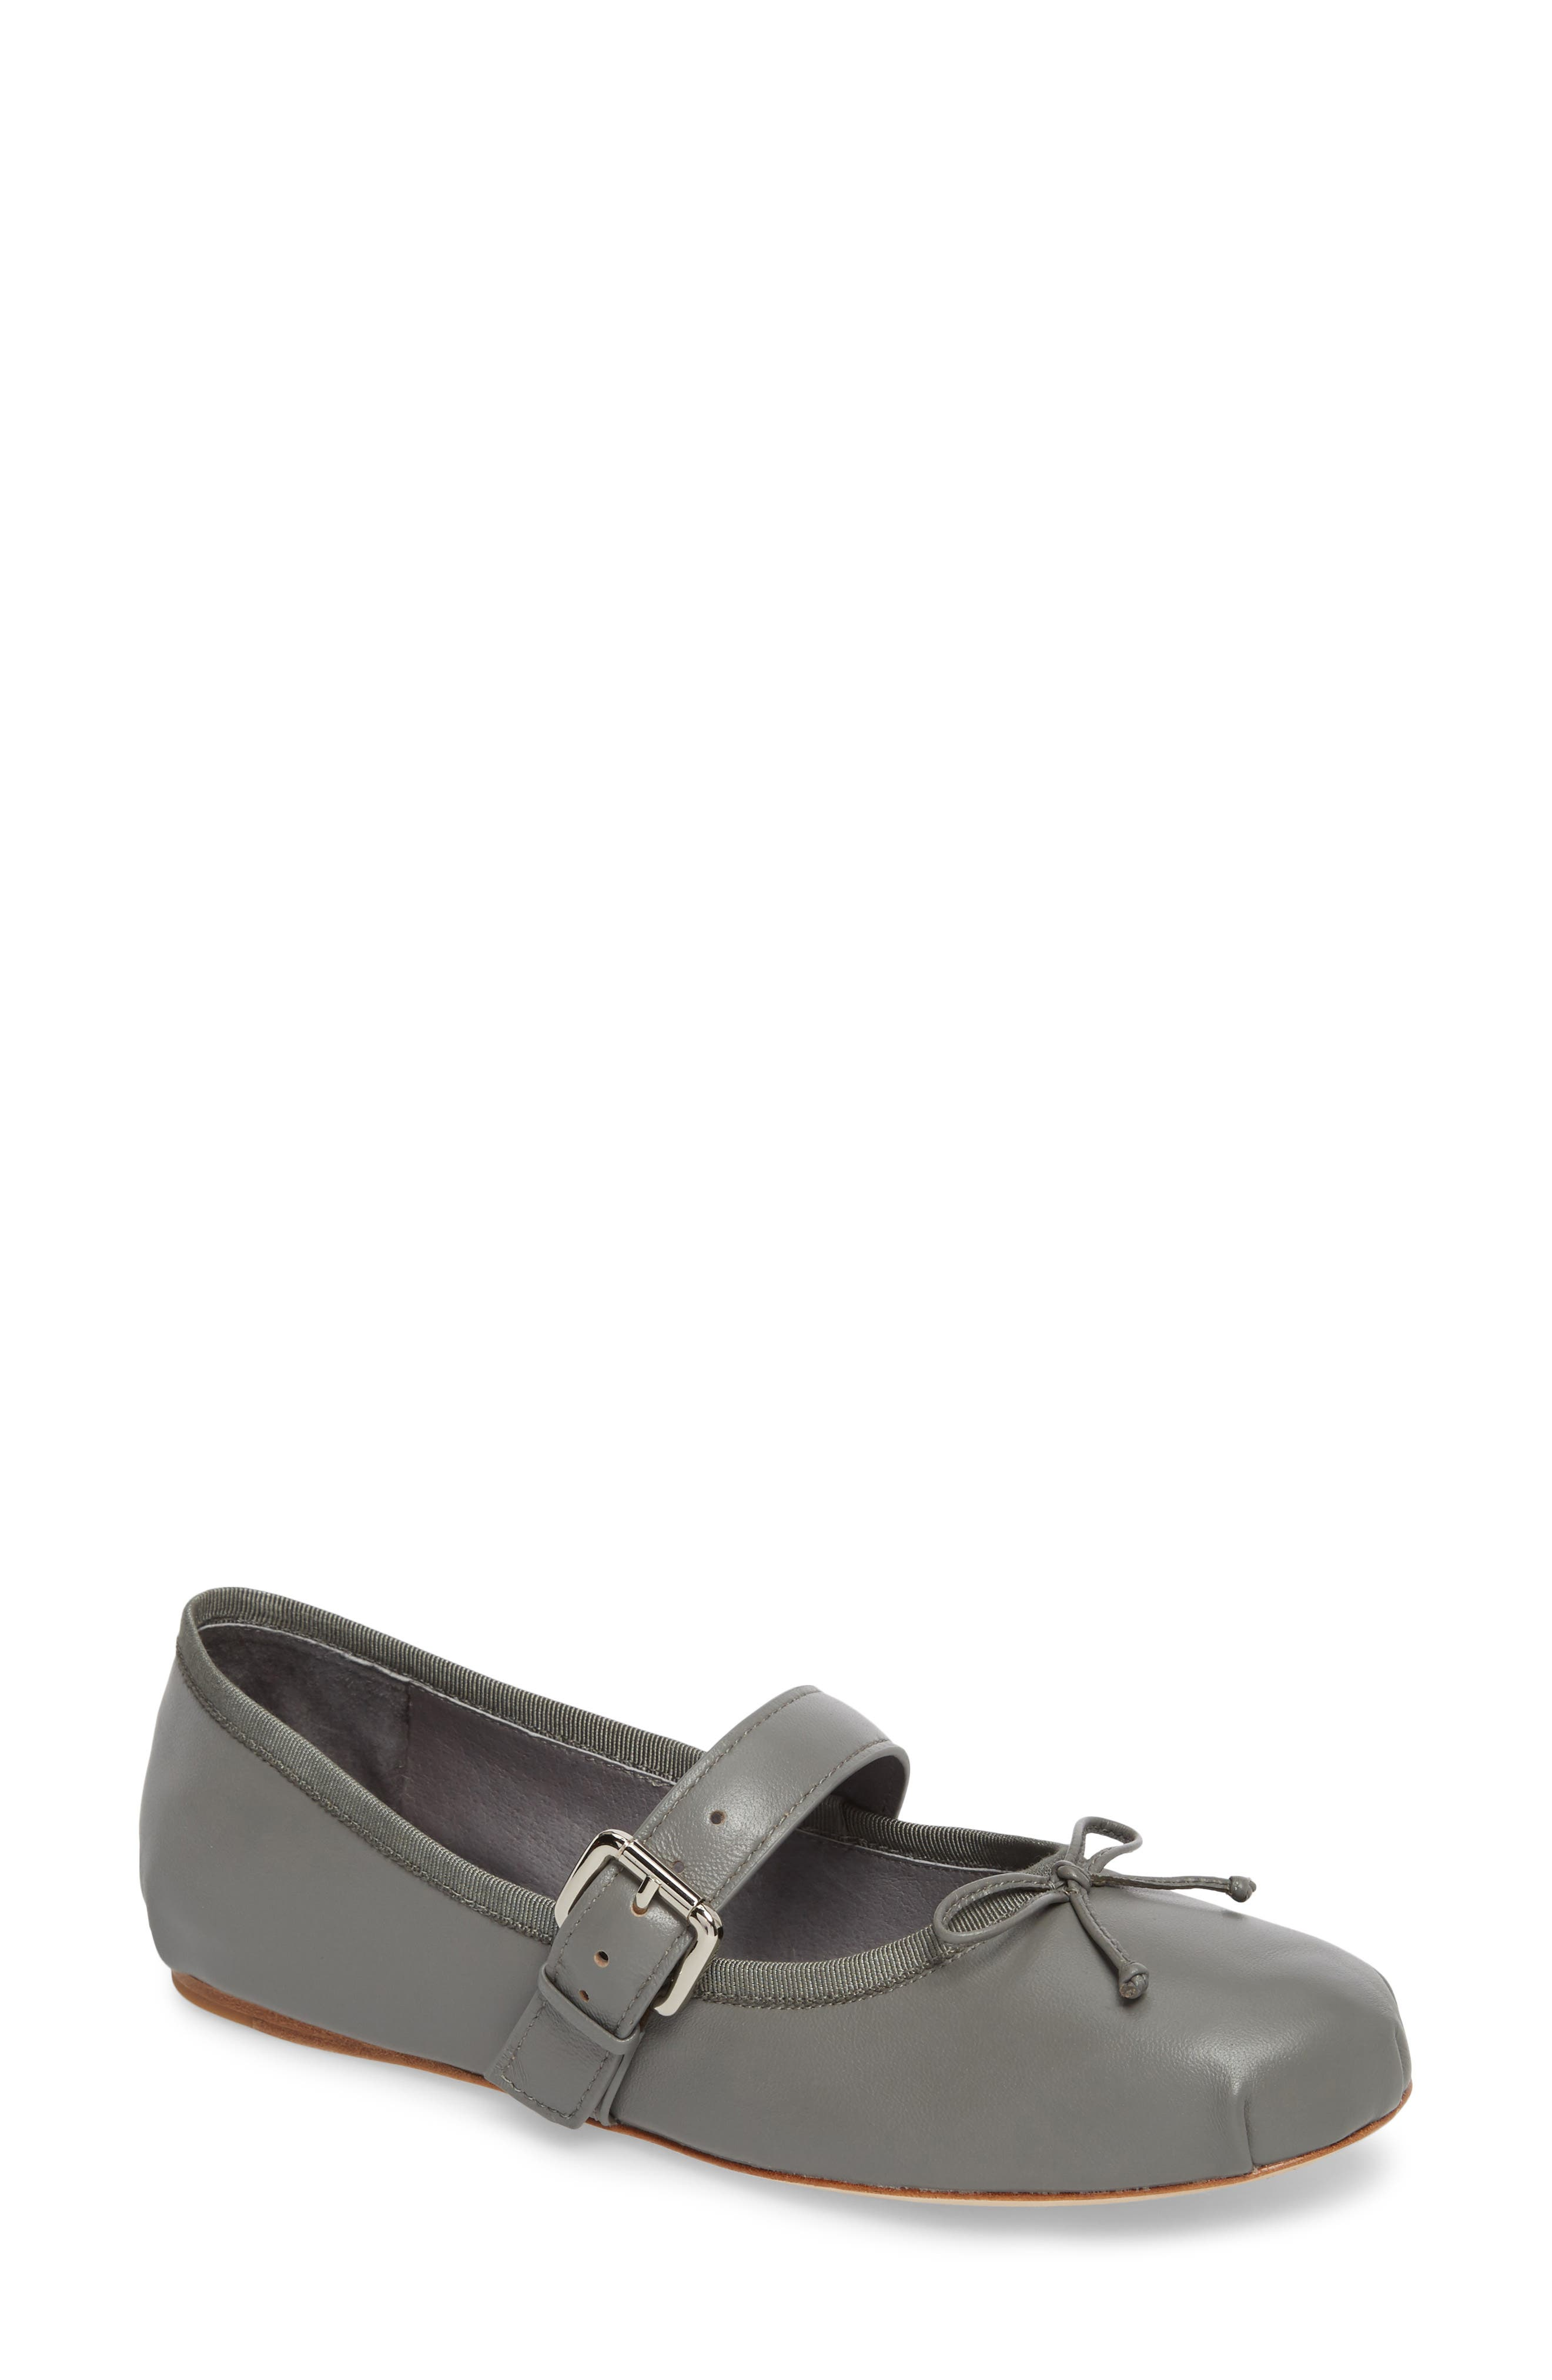 Molly Mary Jane Flat,                             Main thumbnail 1, color,                             GREY LEATHER